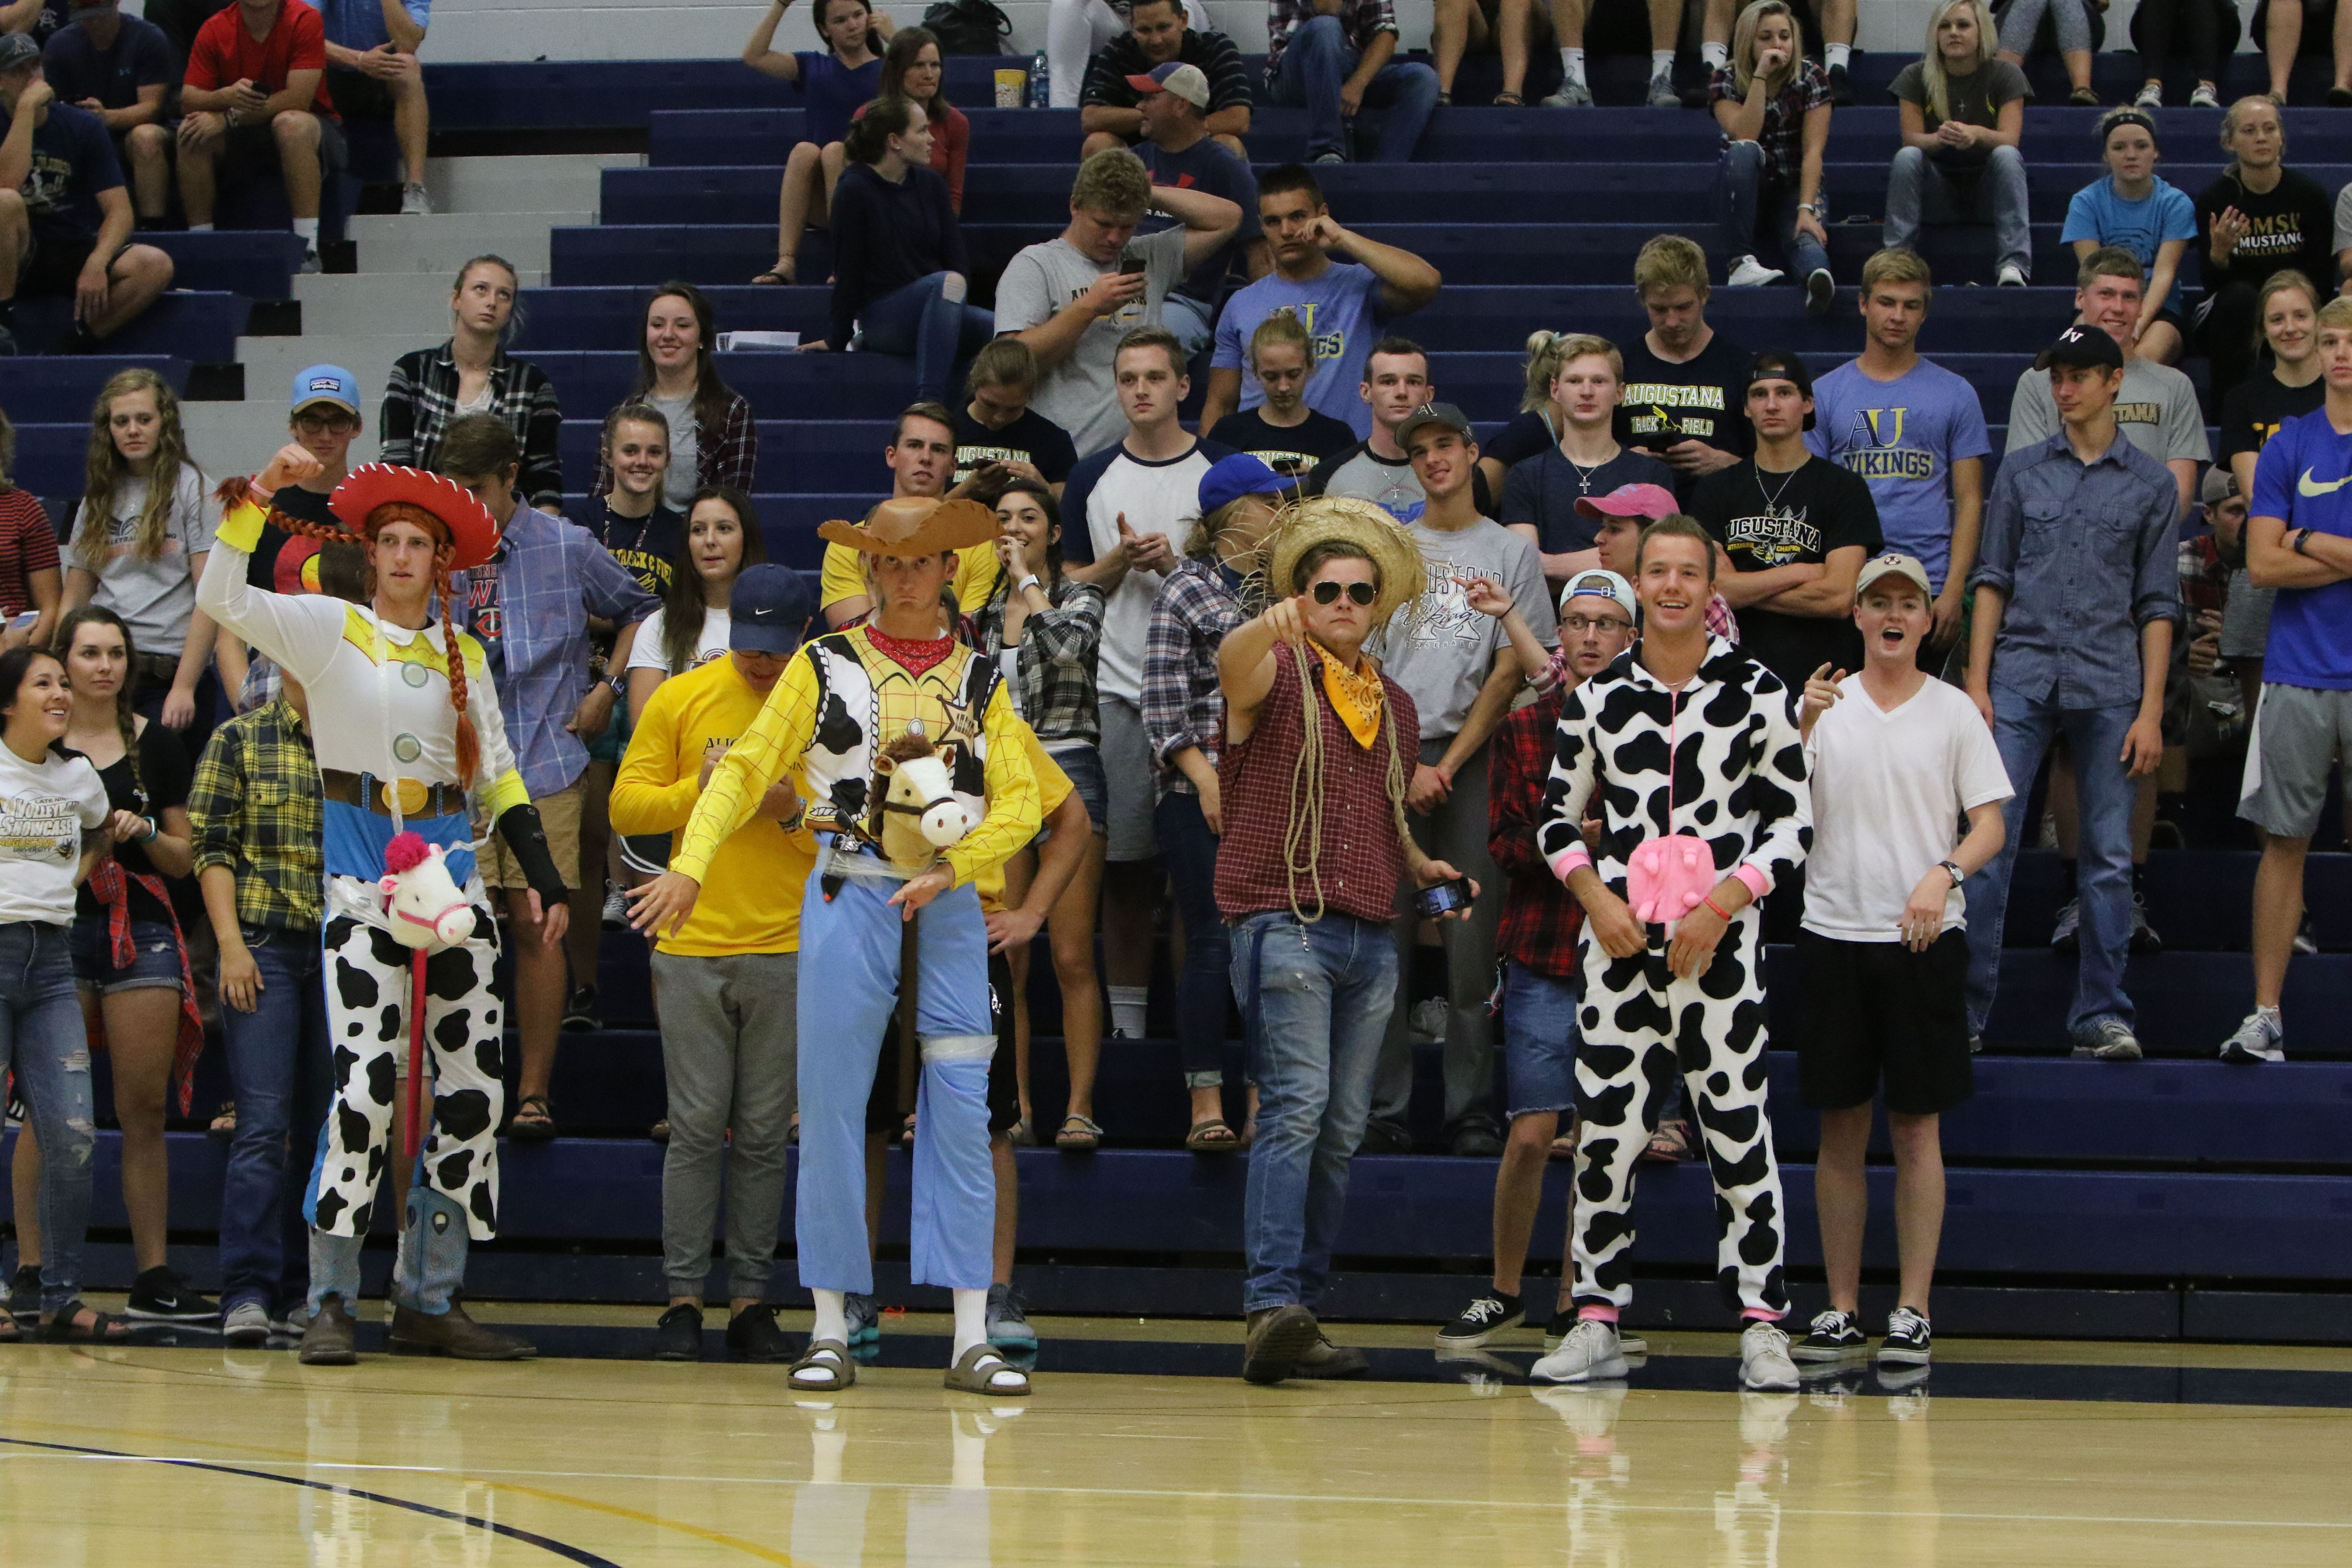 Western Theme Night For Our Students At Volleyball Against Smsu Athlete Vikings Fan Augustana